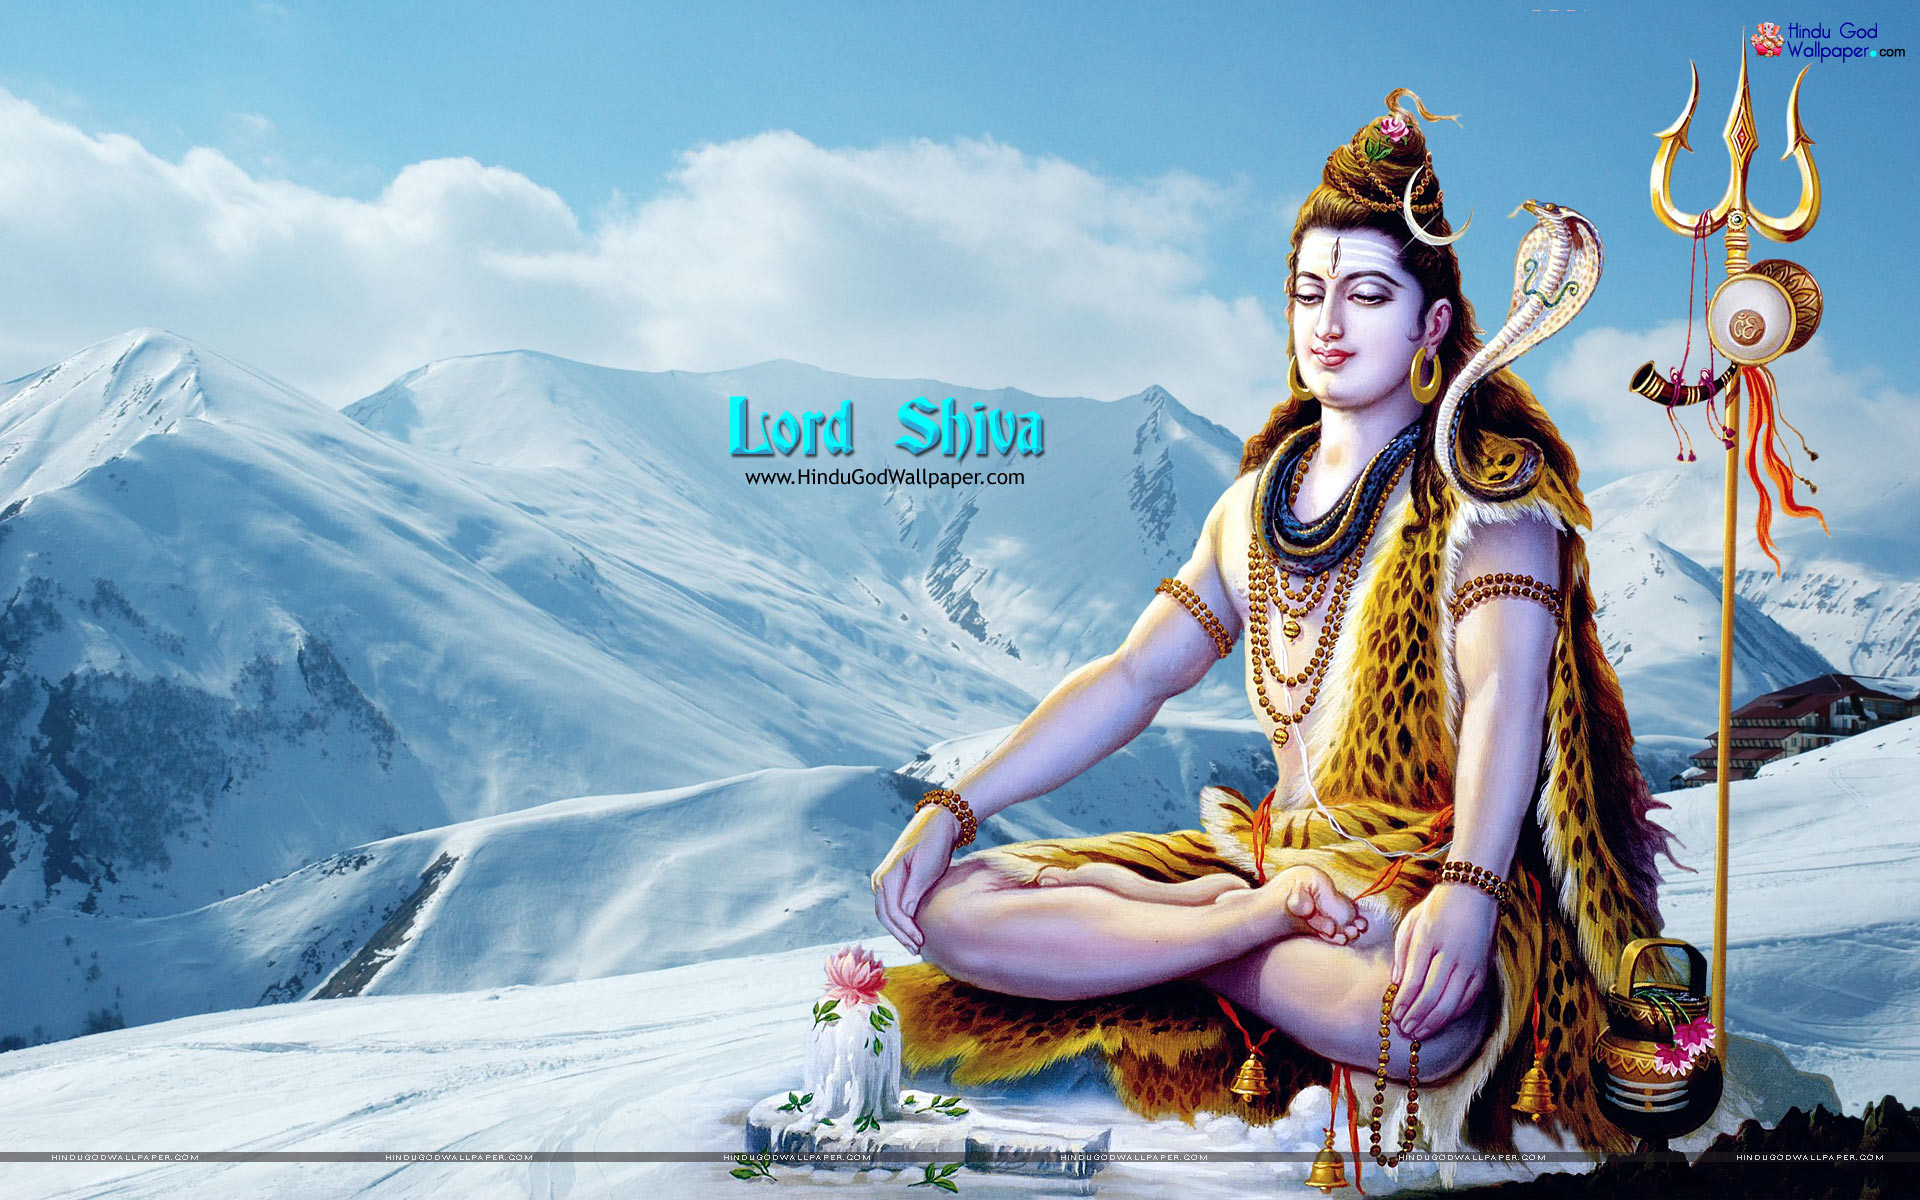 Lord Shiva Wallpapers, Pictures & Images Wallpaper Full Size Download